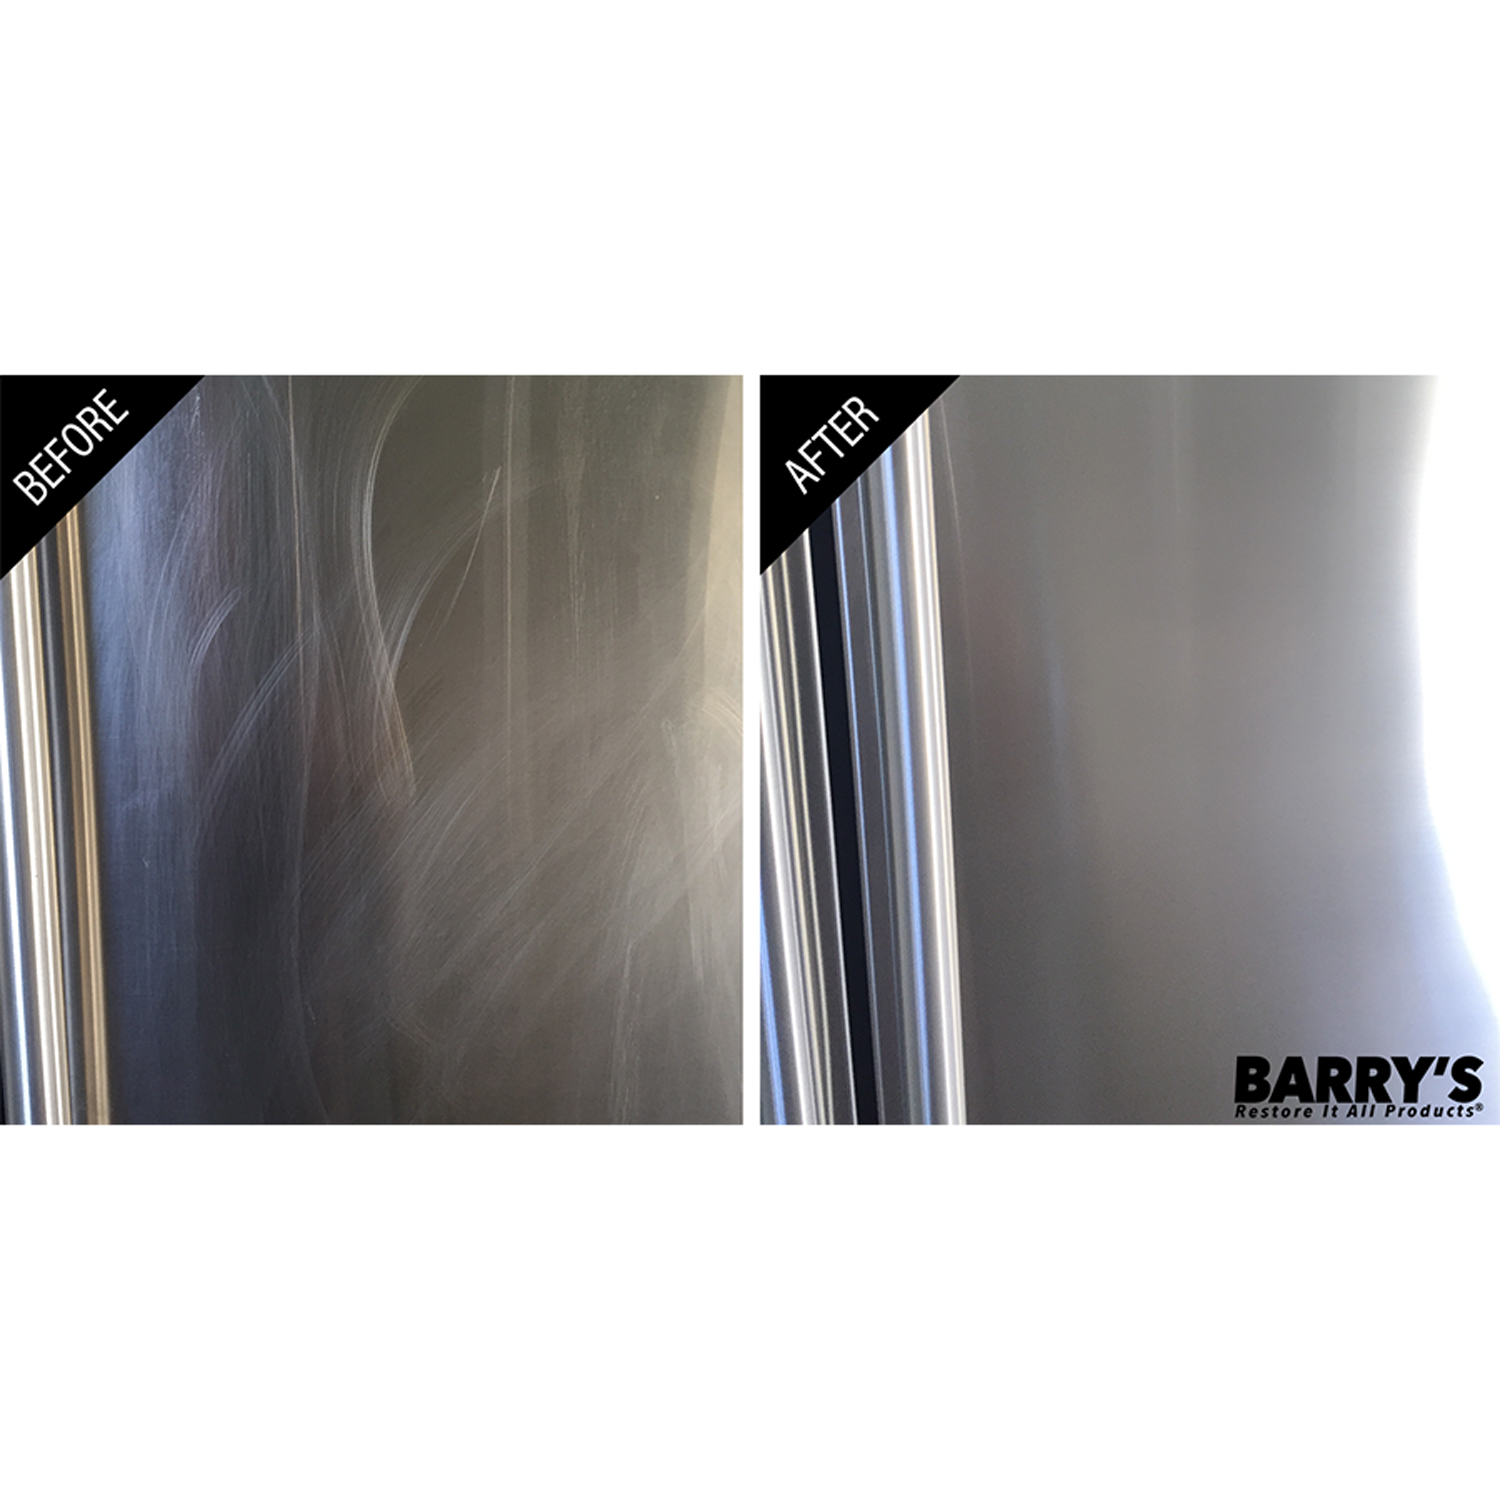 Barry/'s Restore It All Products Scratch-B-Gone for Stainless Steel Small Area